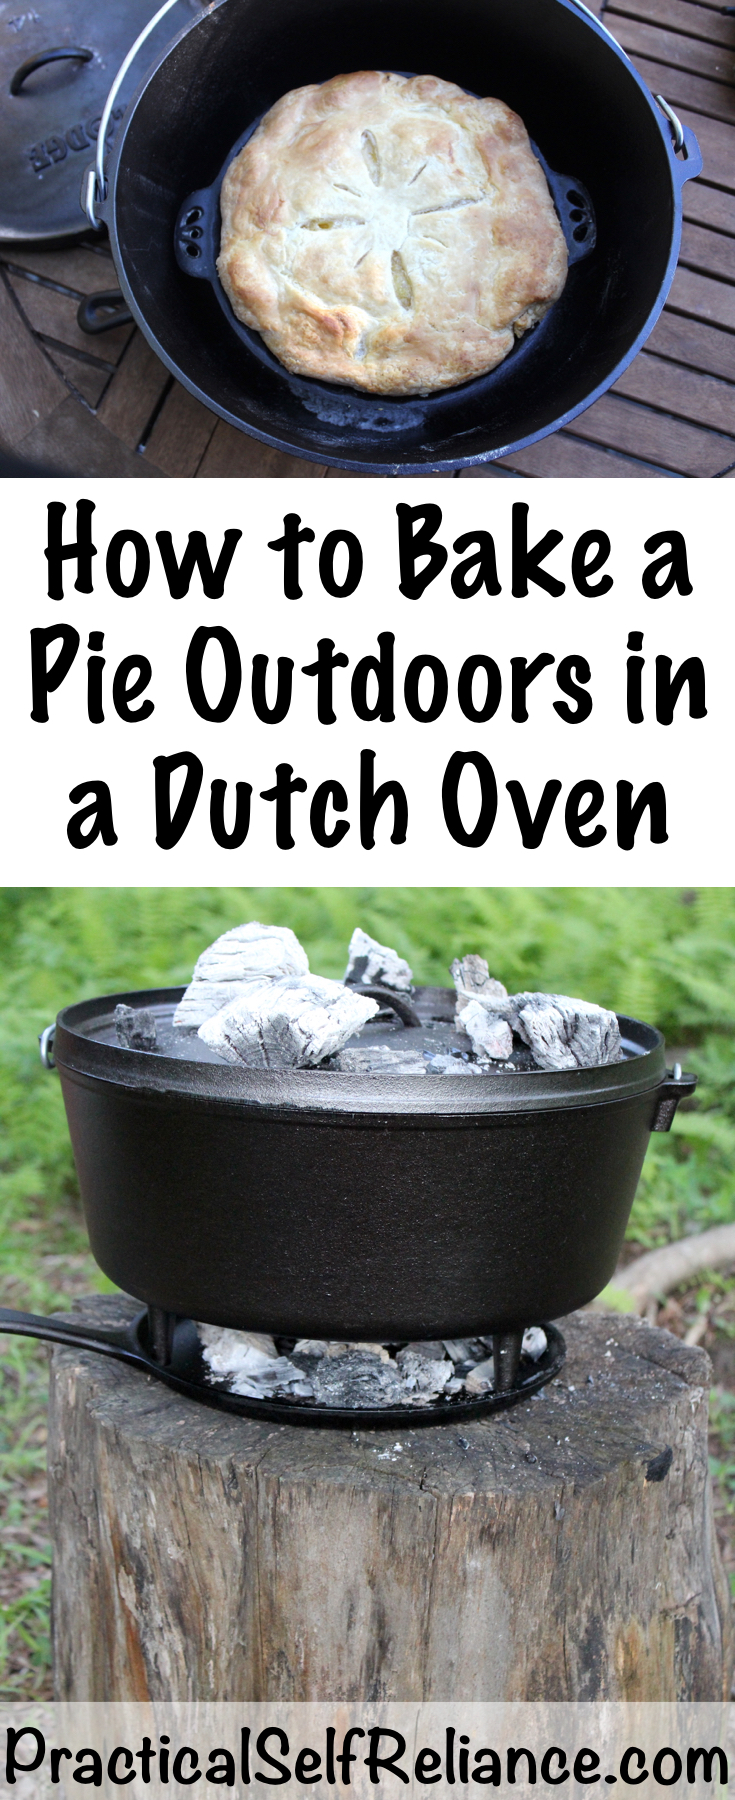 How to Bake a Pie Outdoors in a Dutch Oven ~ Campfire Cooking #camping #campingfood #campingrecipes #pie #survial #preparedness #prepper #howtobakepie #shtf  #glamping